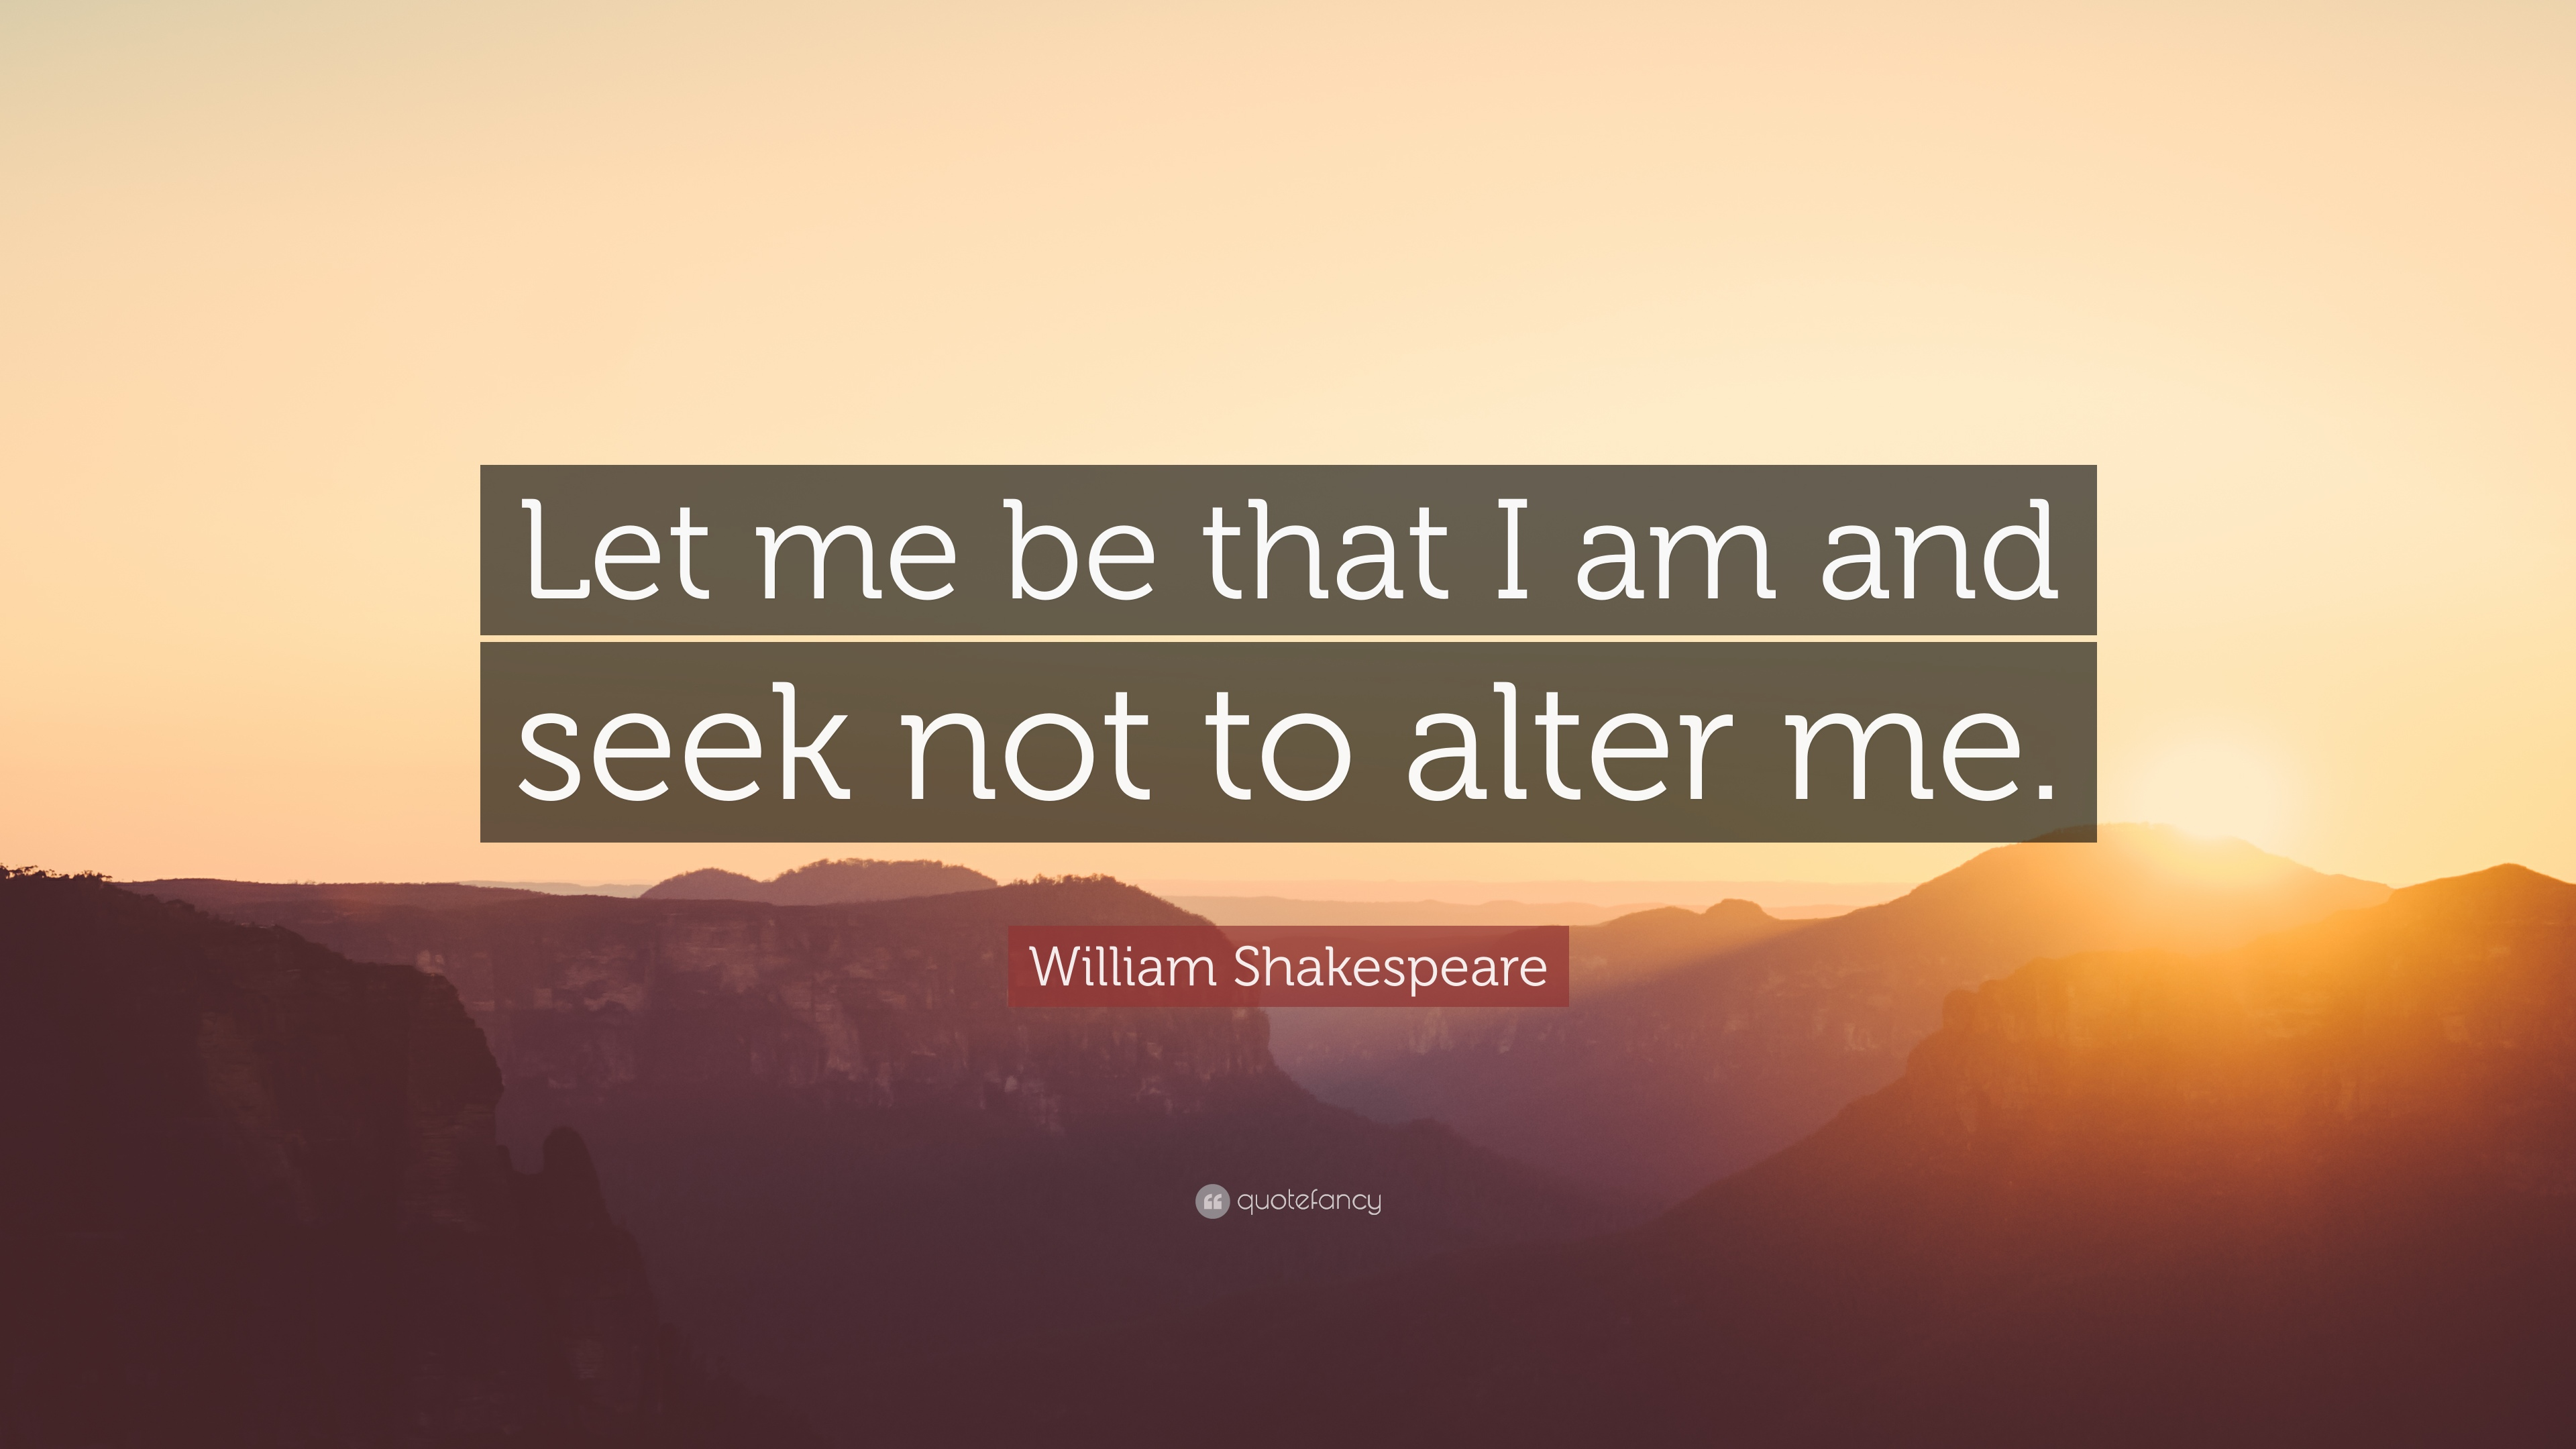 William Shakespeare Quote Let Me Be That I Am And Seek Not To